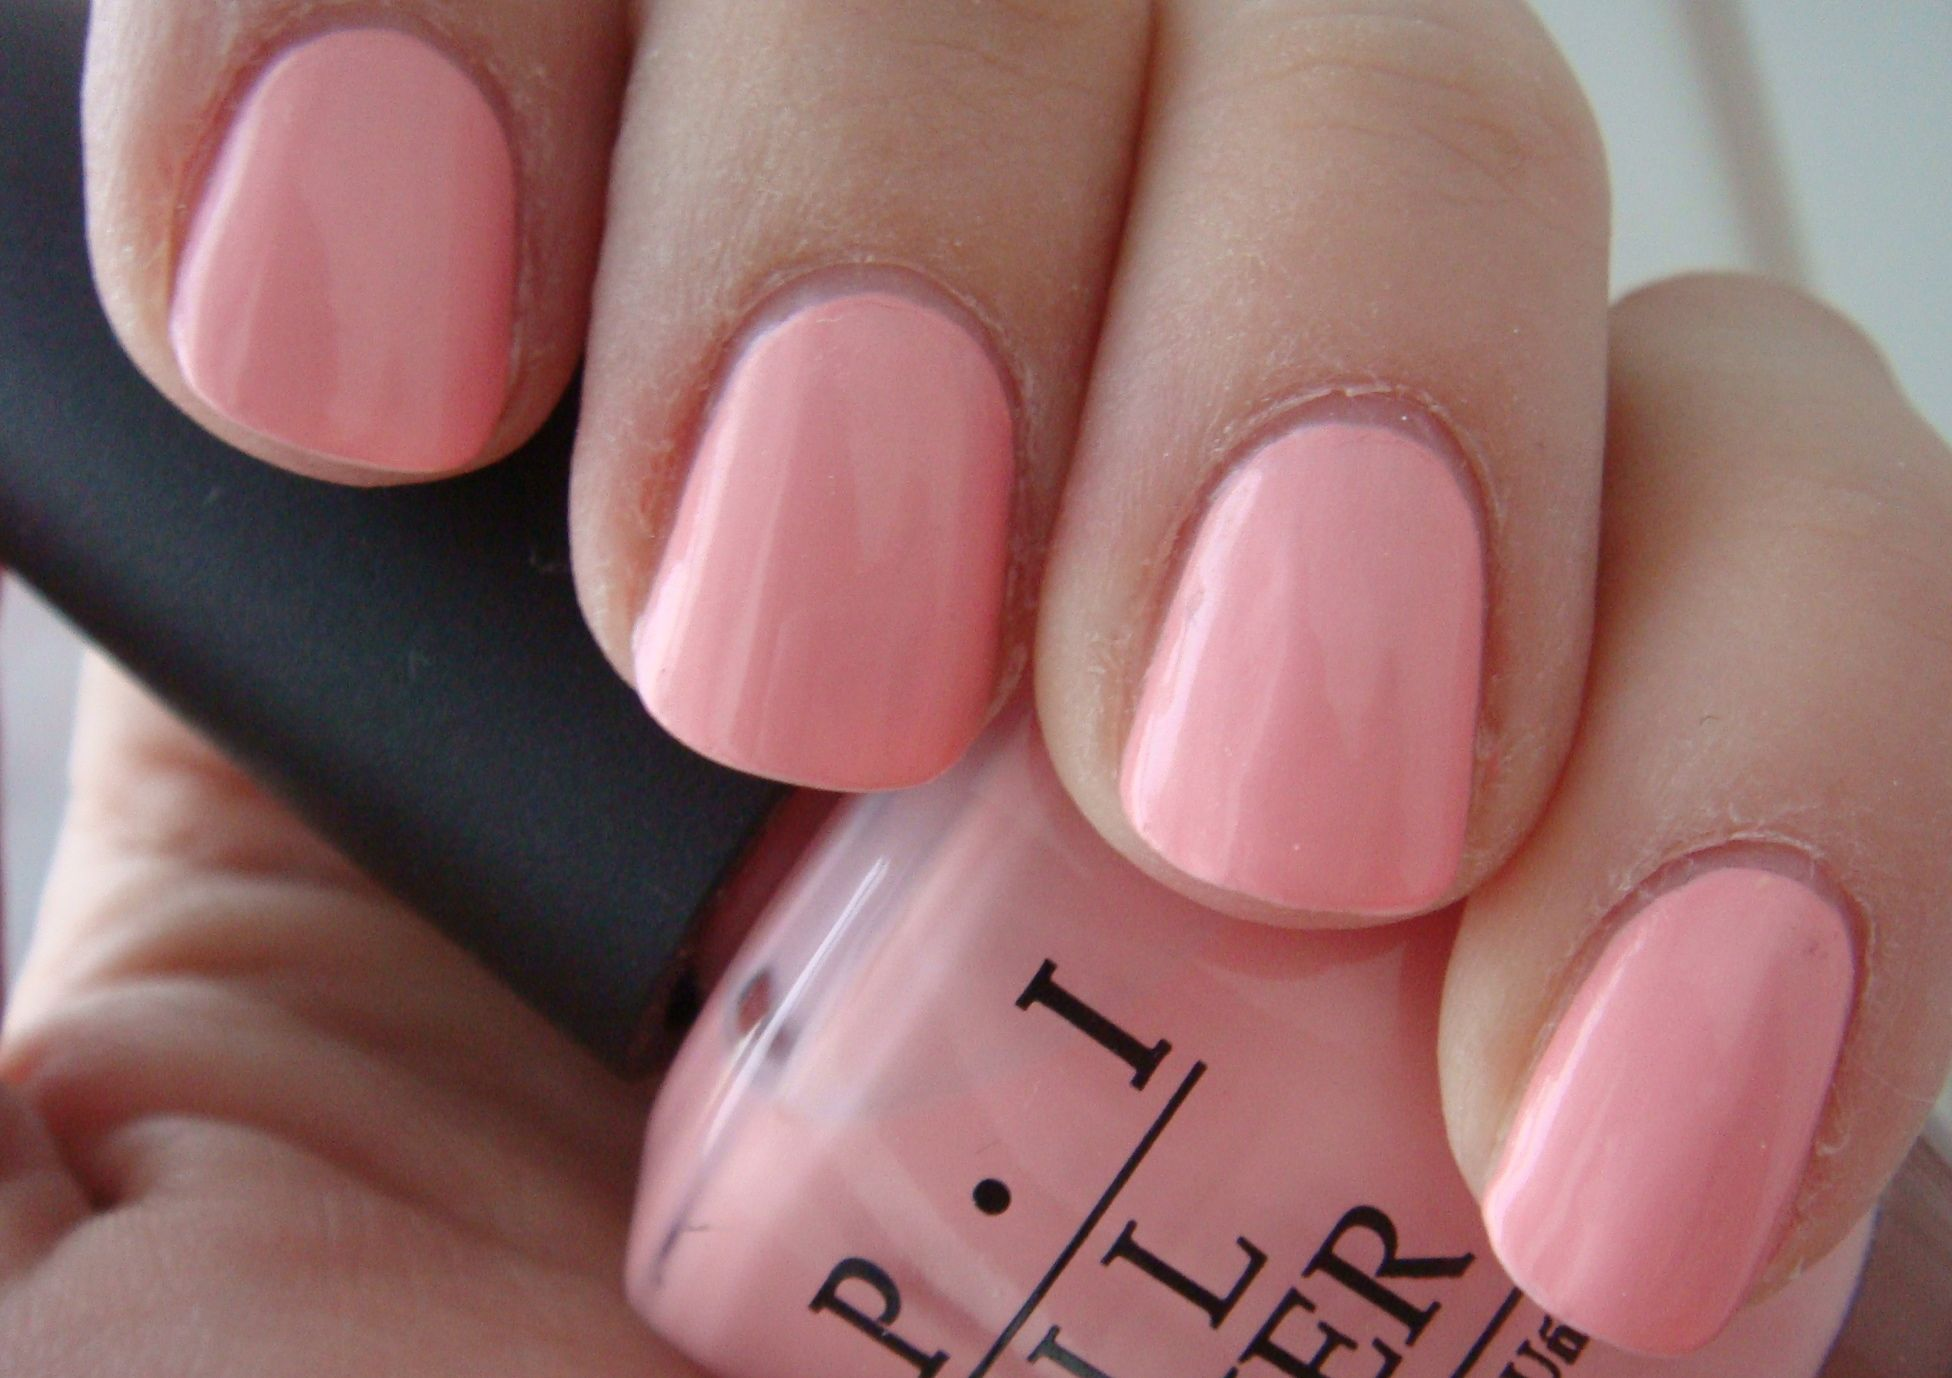 OPI Italian Love Affair - wearing this color right now <3 | Nails ...